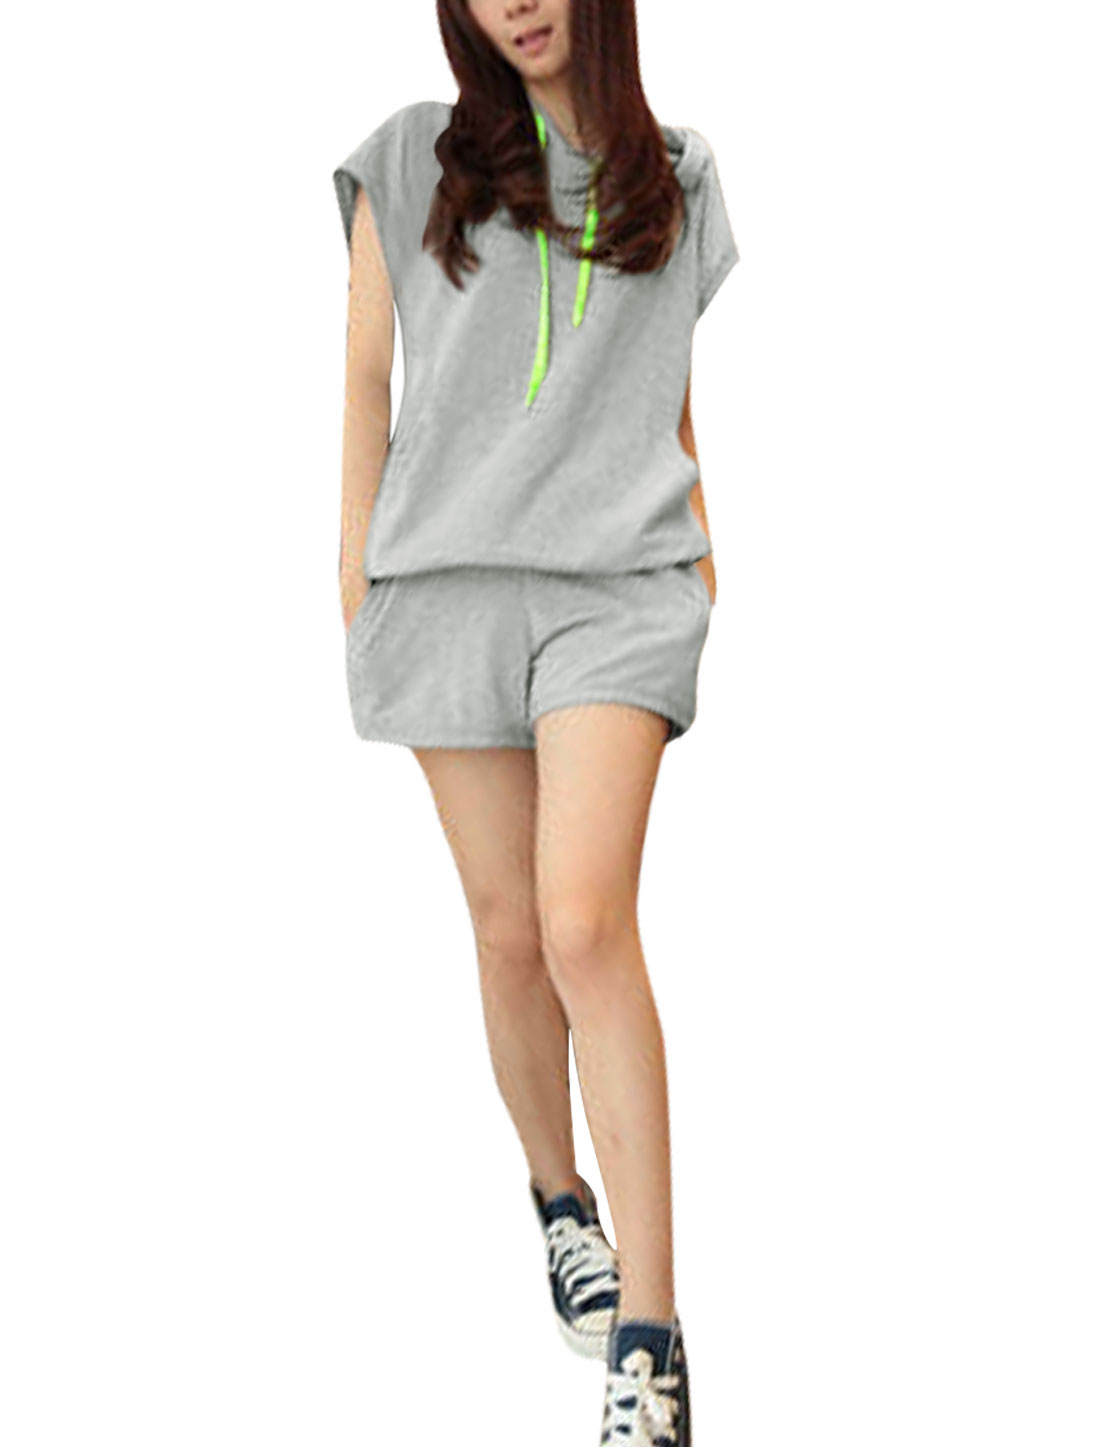 Women Stretchy Hem Short-sleeved Hoody w Pockets Shorts Gray XS